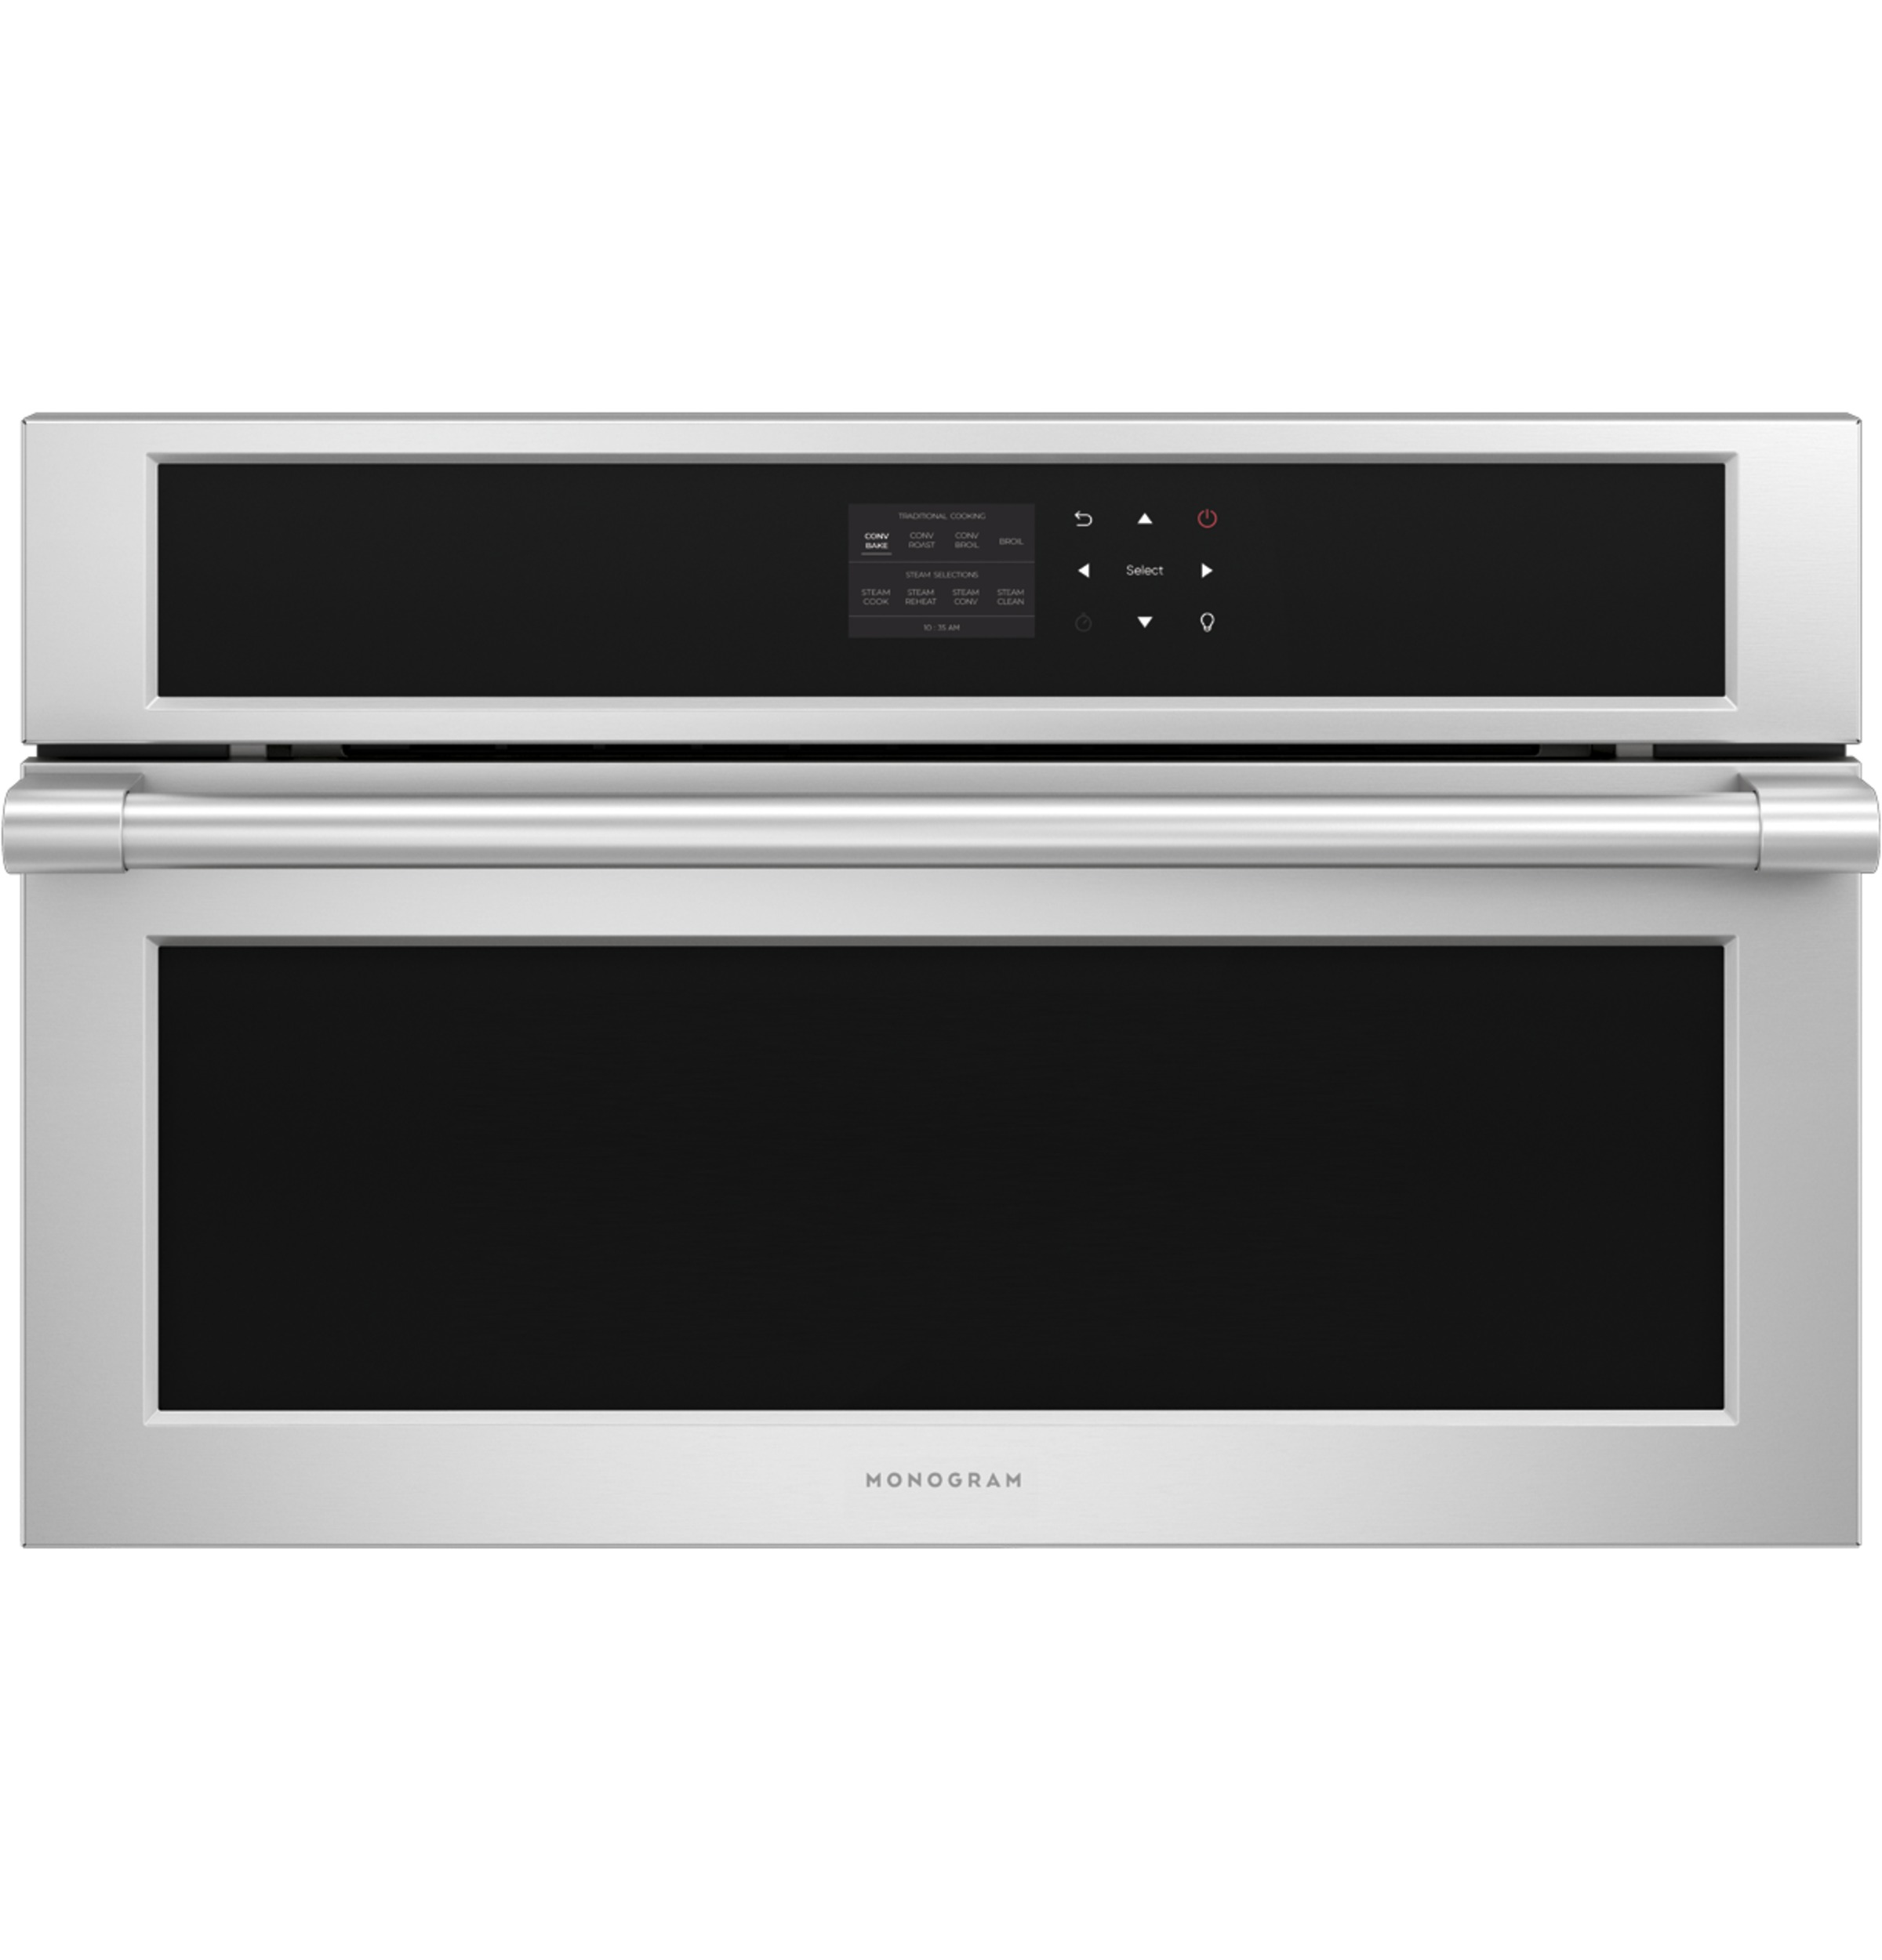 "Monogram Monogram 30"" Smart Statement Steam Oven - AVAILABLE EARLY 2020"